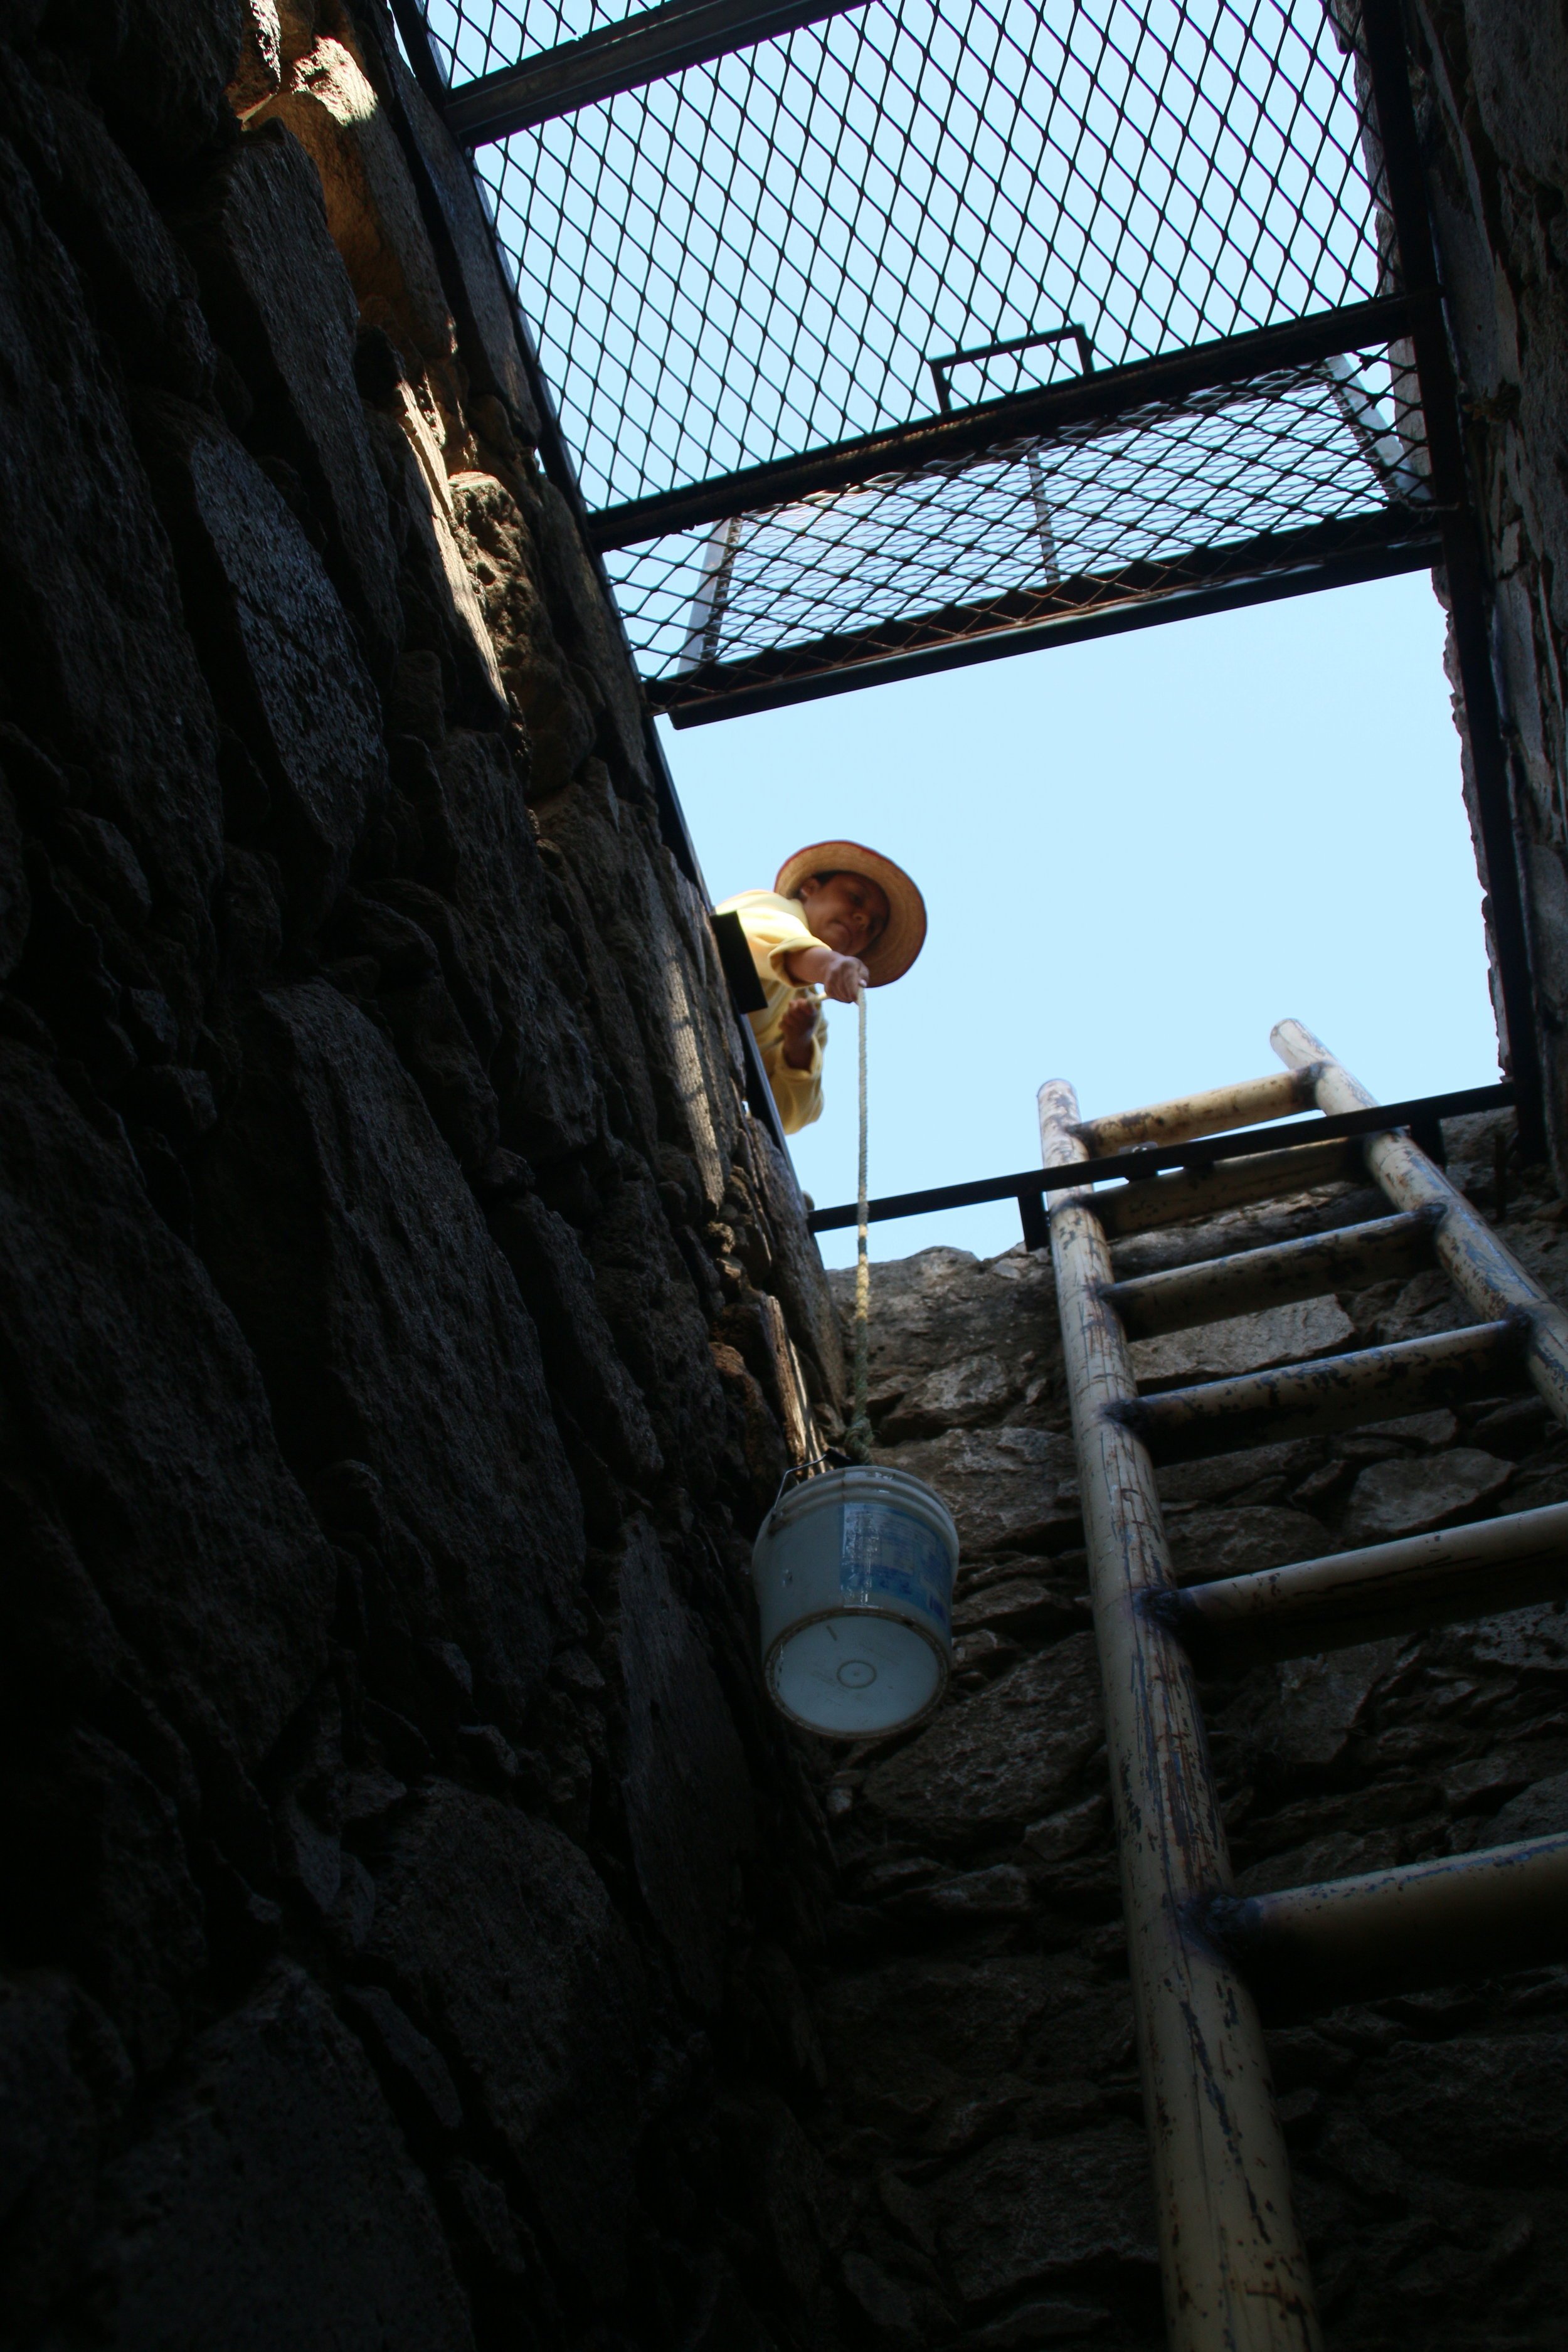 Members of the community previously had to extract water from the well using buckets tired to ropes - a dangerous process.